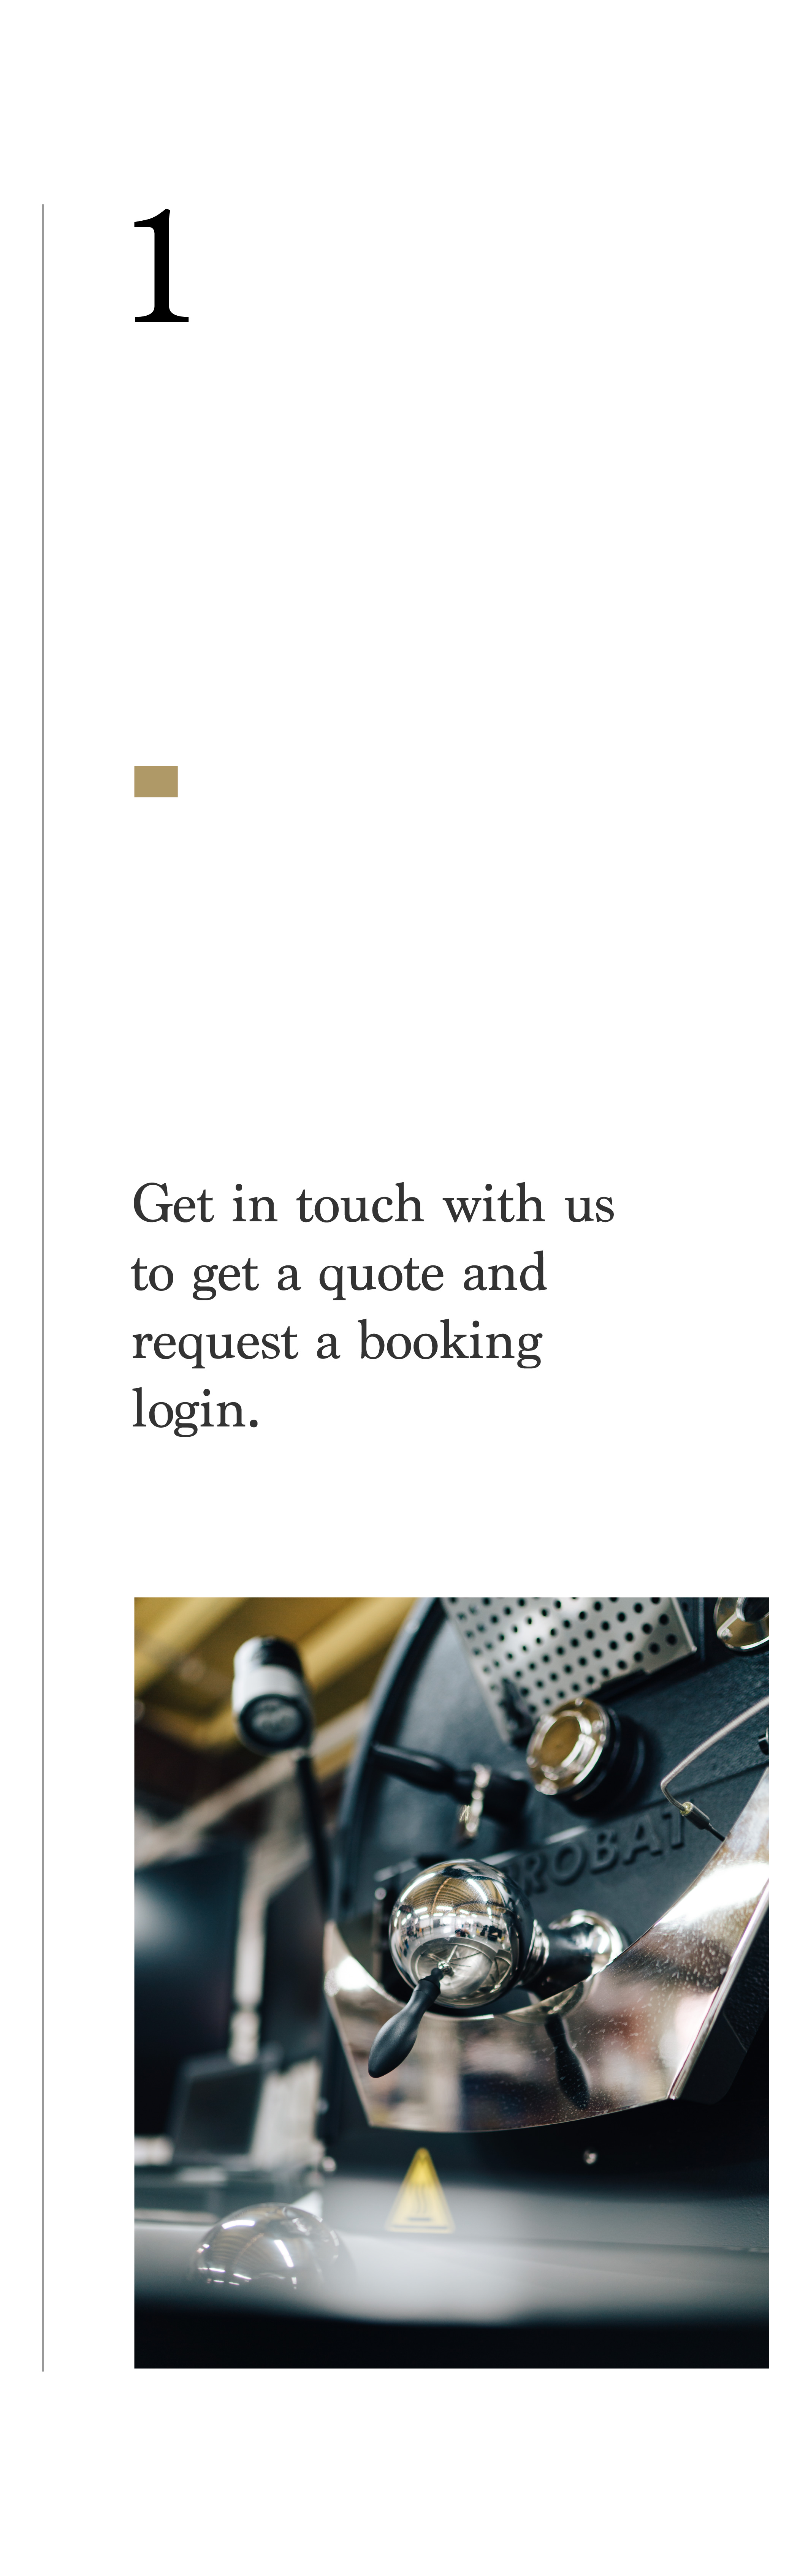 Step 1- Get in touch with us to get a quote and request a booking login.